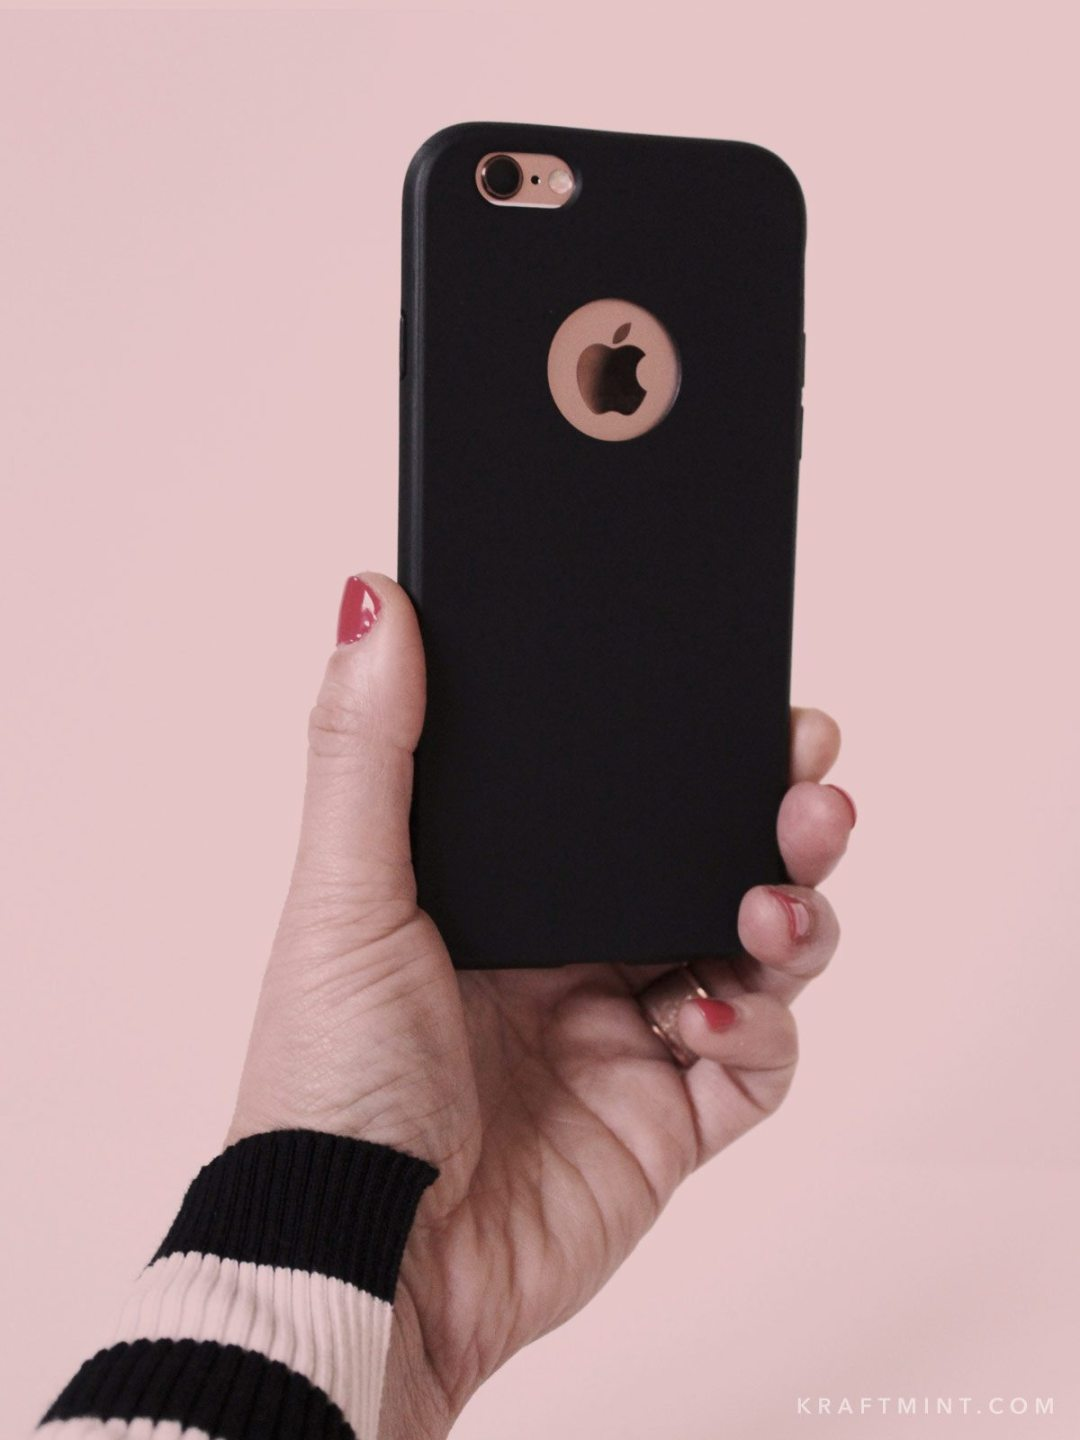 A Modern and Minimalistic iPhone Case